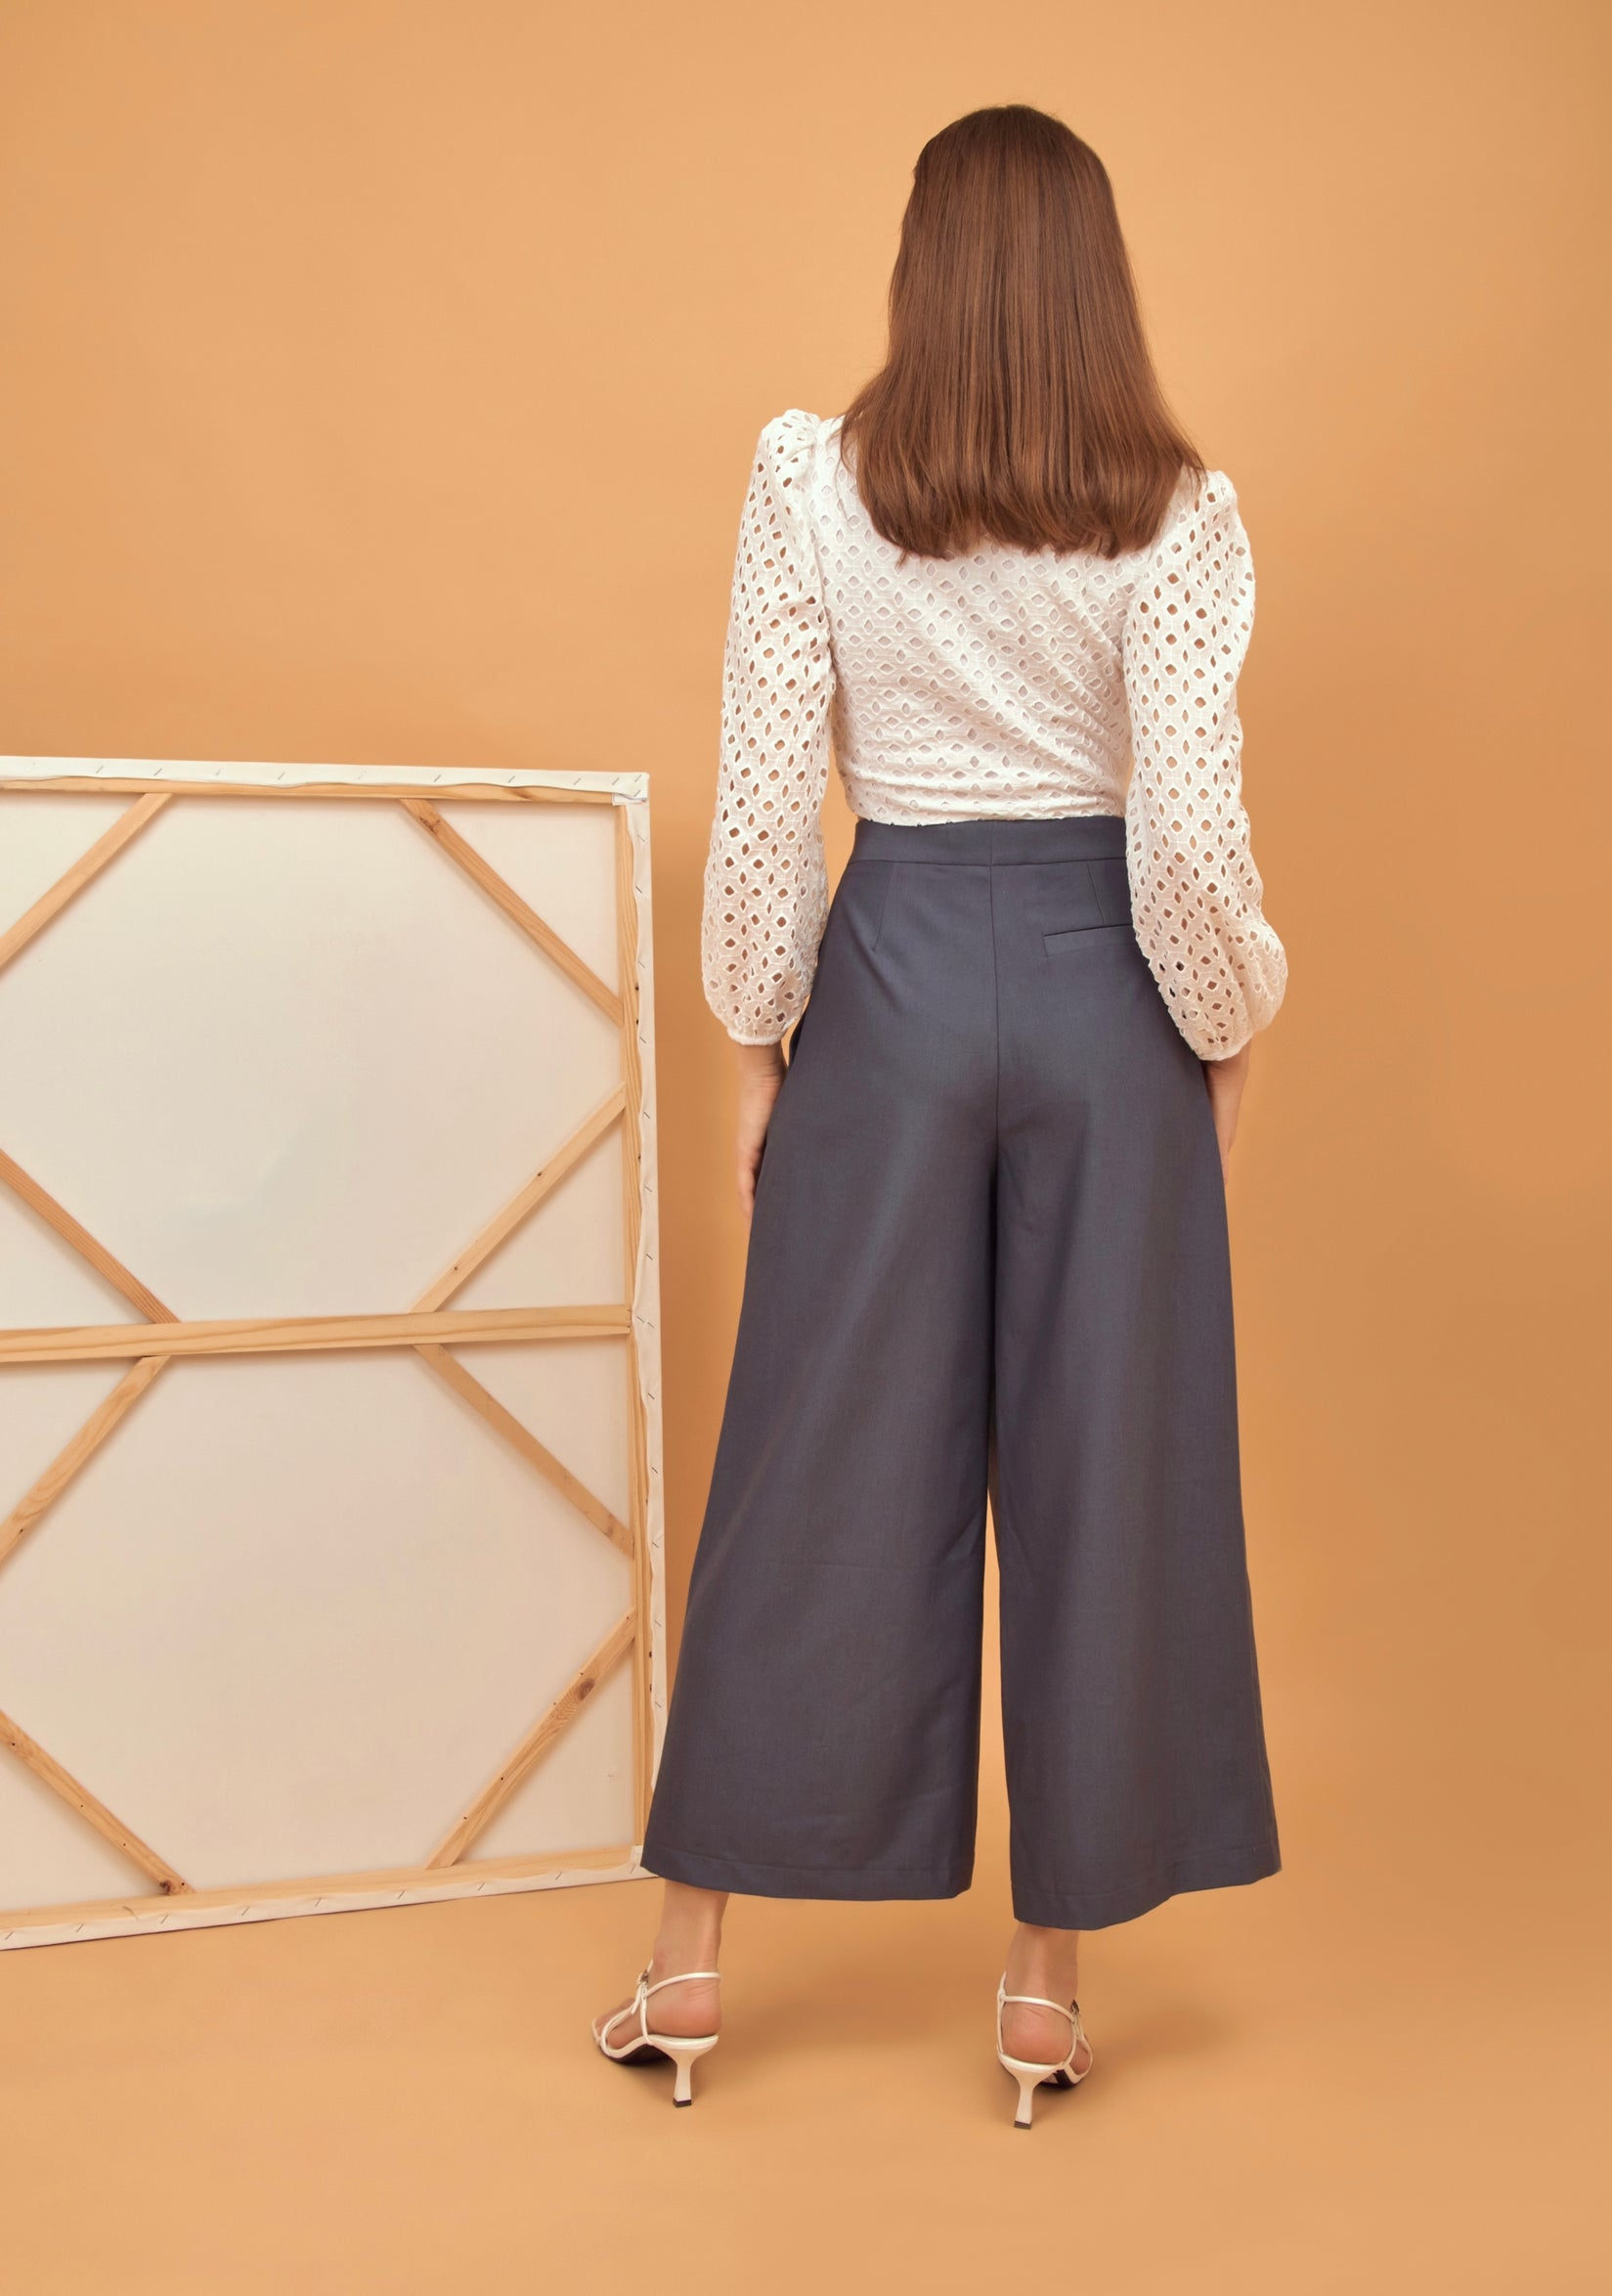 Buttoned grey wide leg pants